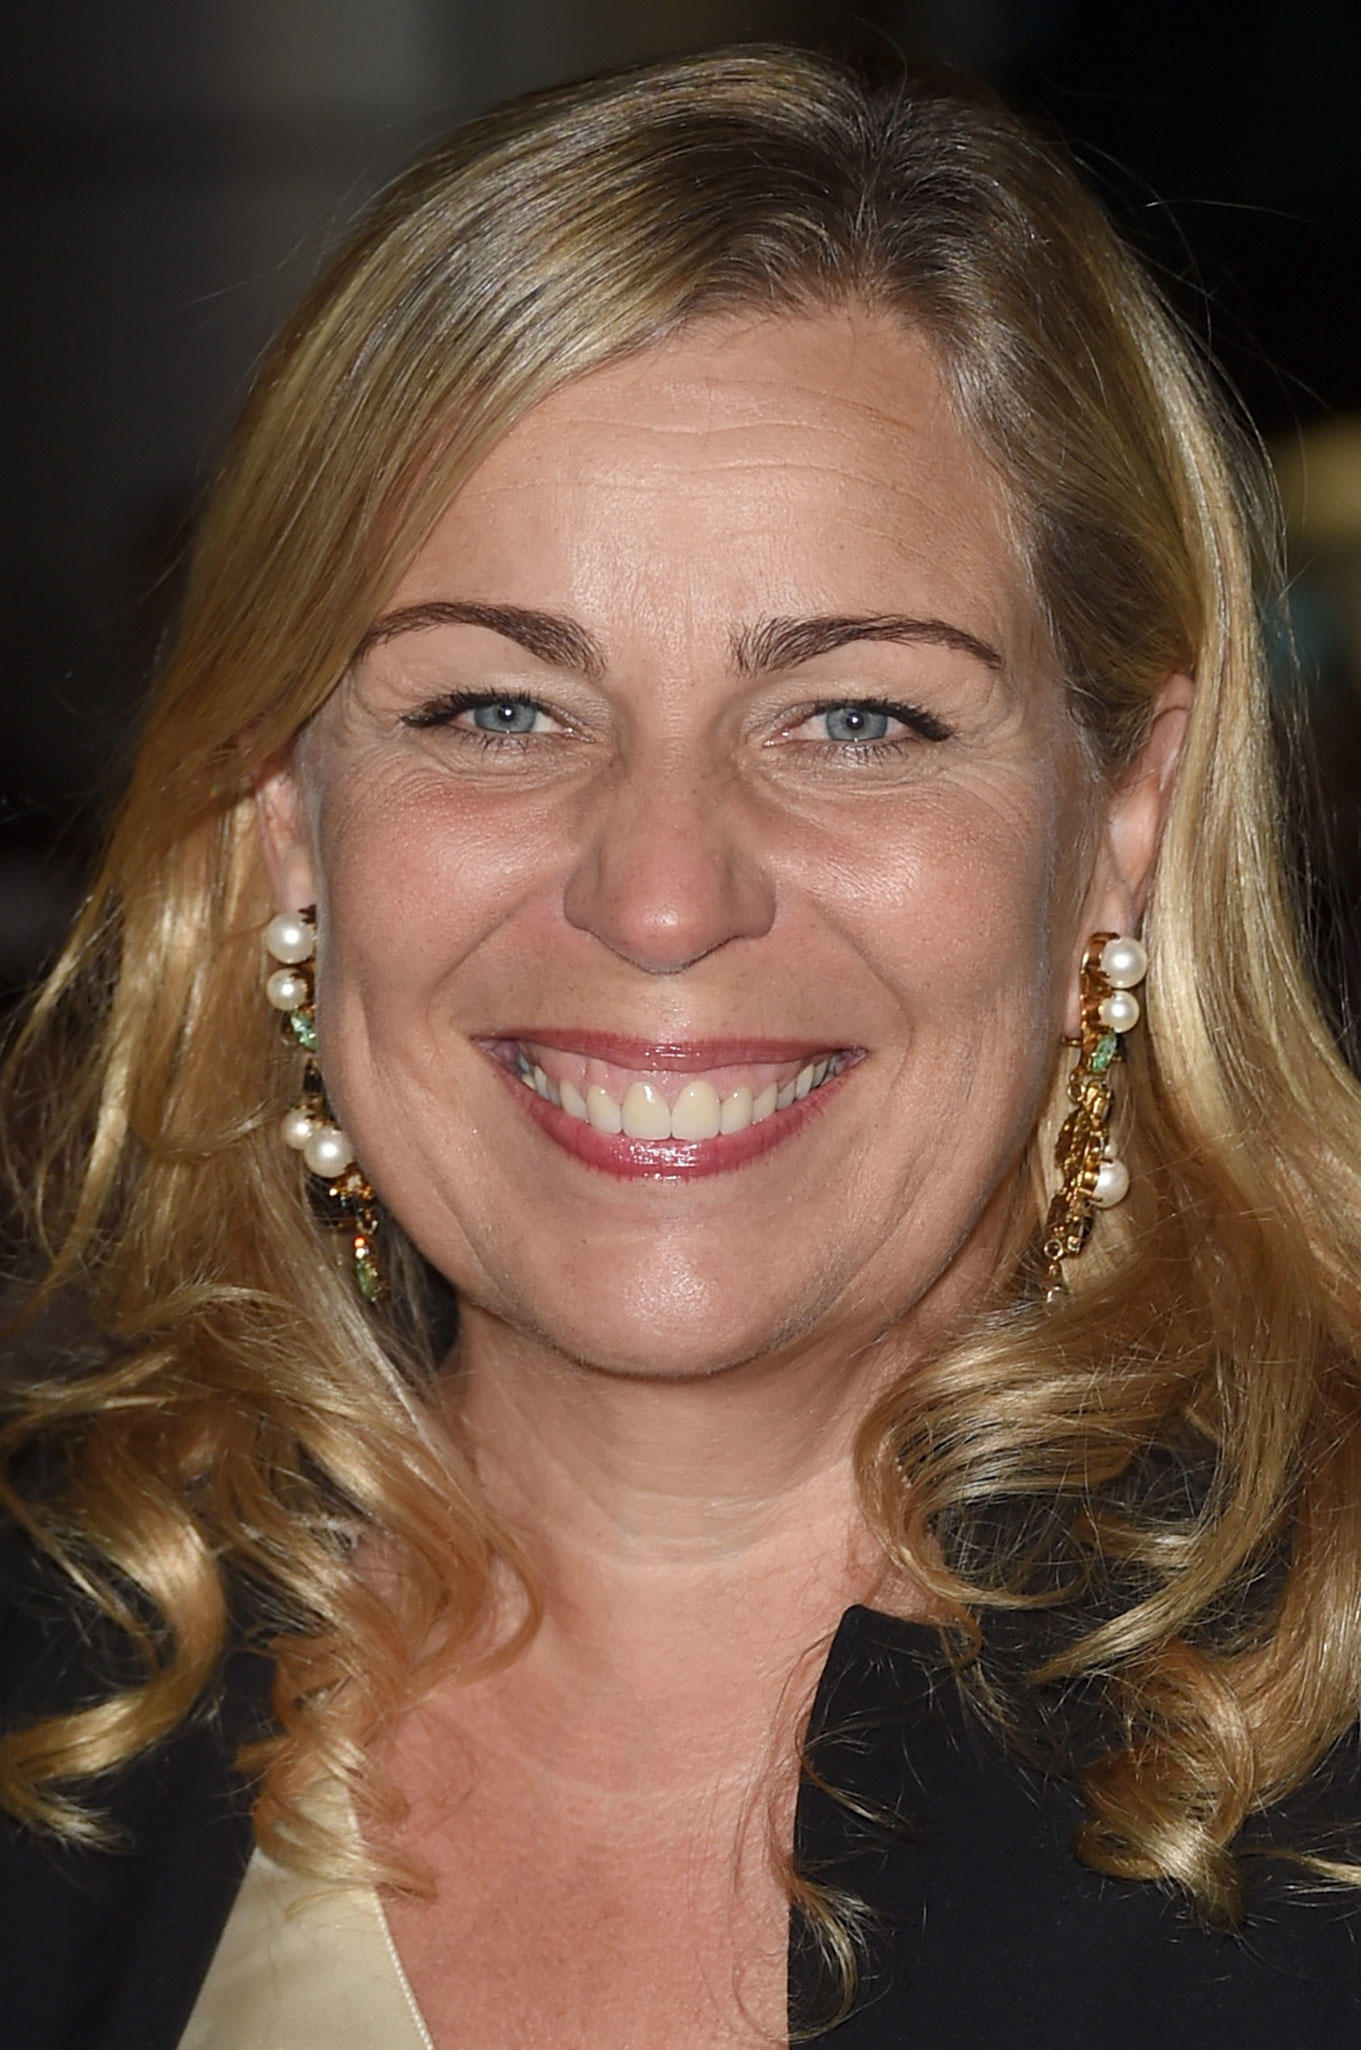 Lone Scherfig at the TIFF premiere of